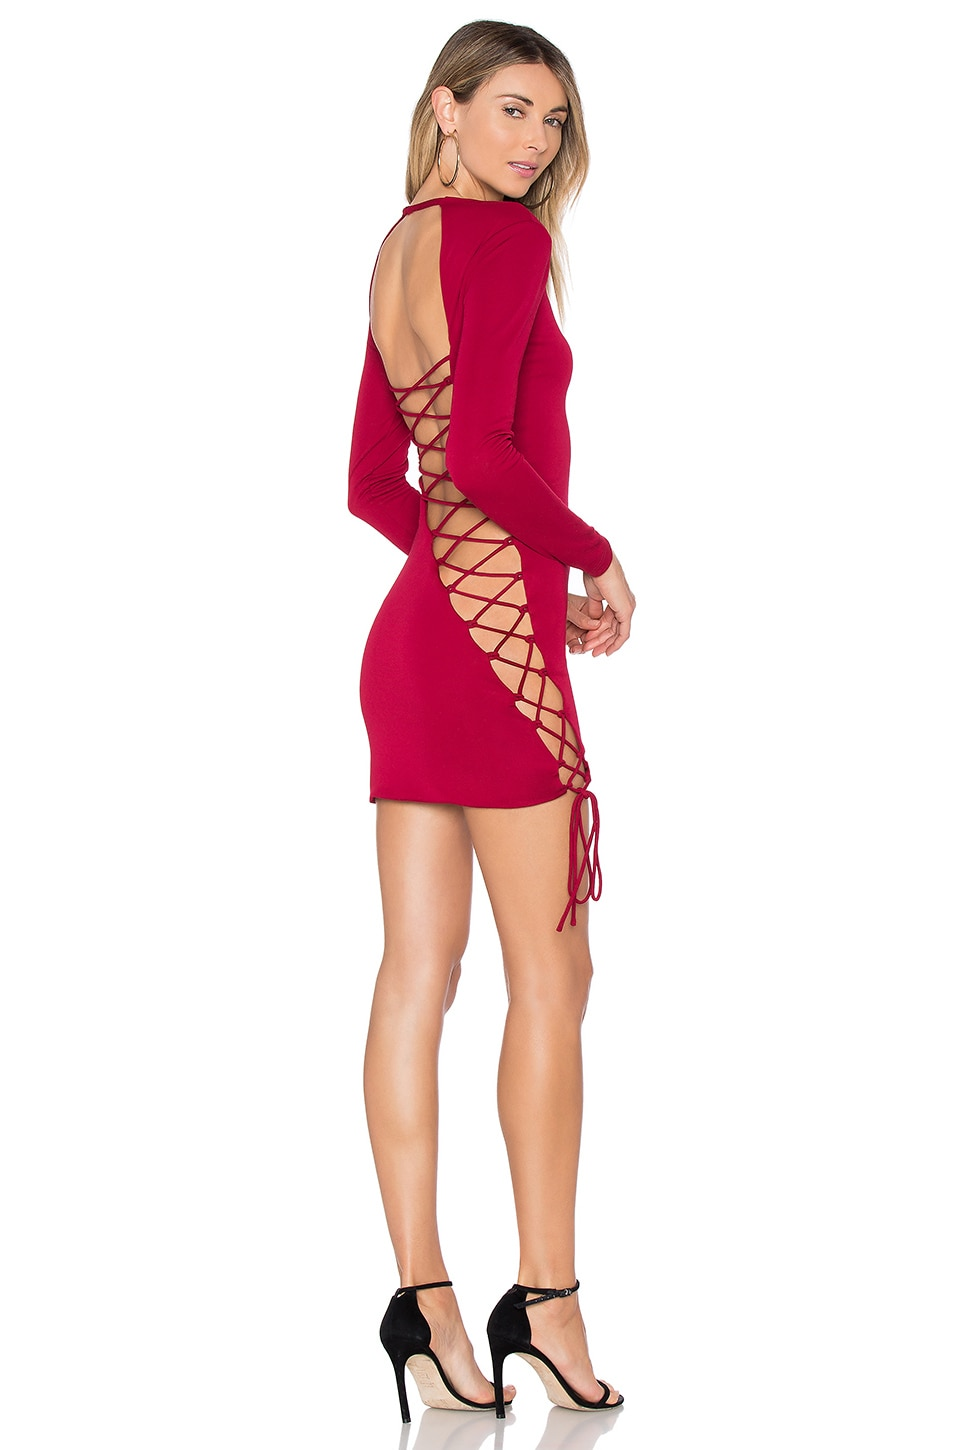 h:ours Kelsey Dress in Burgundy